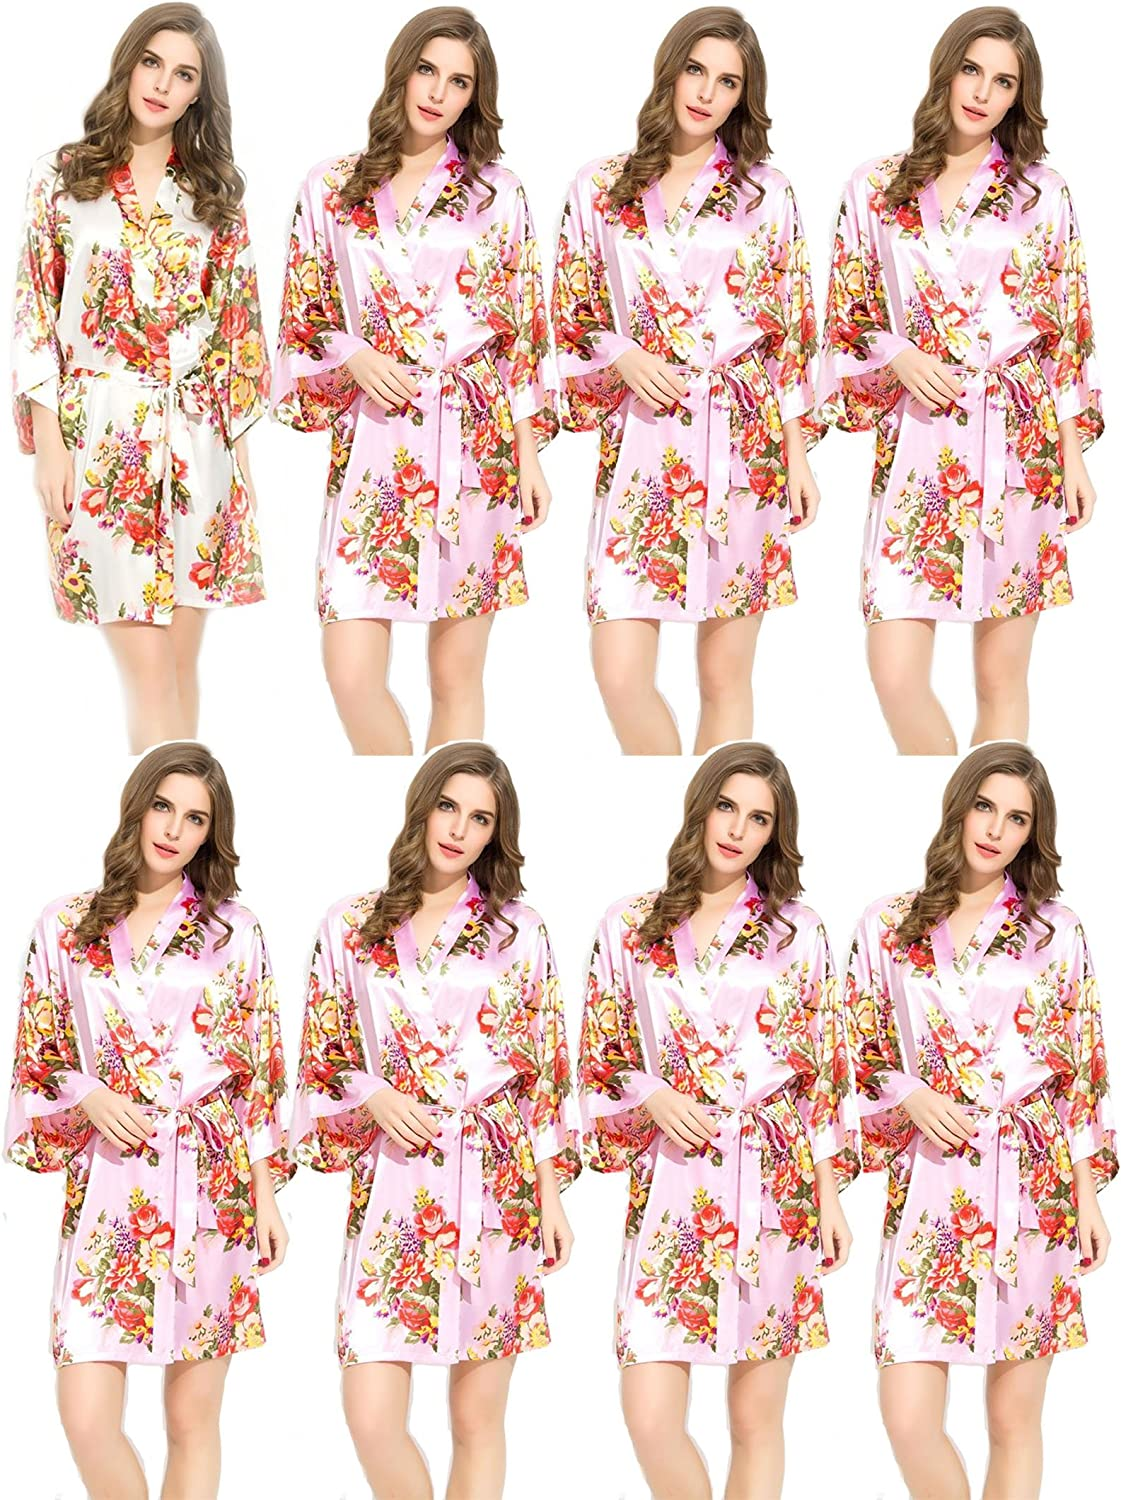 8 Floral Satin Bridesmaids Robes Pink & White Wedding Bride by Endless Envy